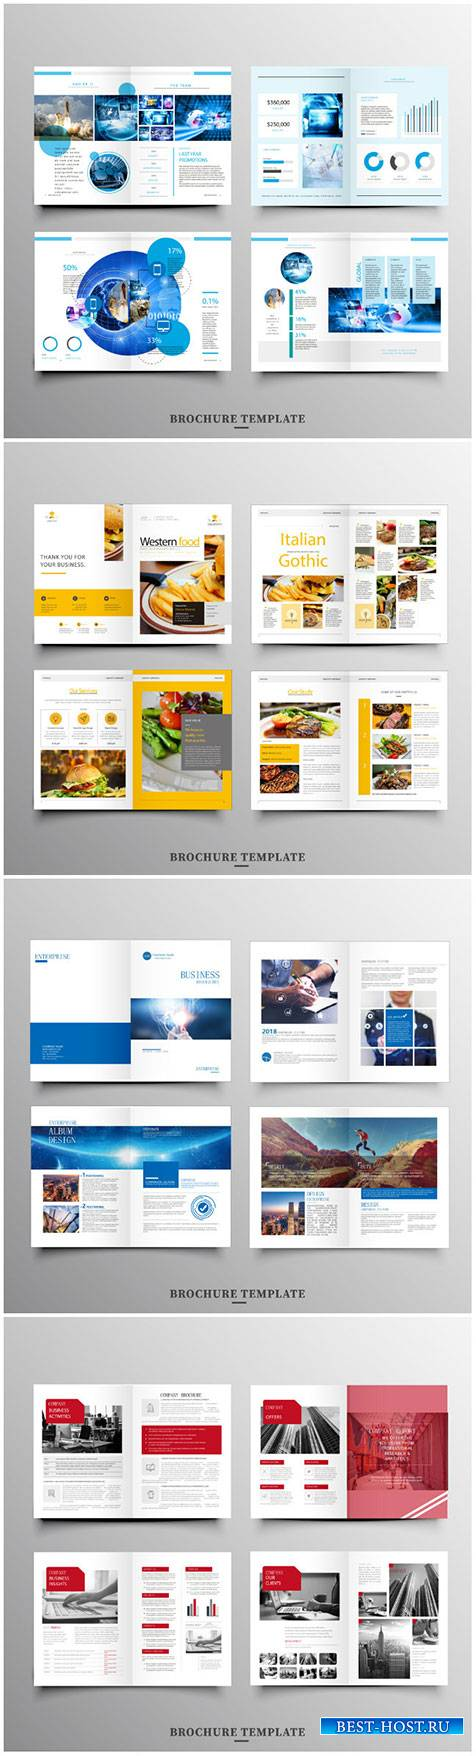 Brochure template vector layout design, corporate business annual report, magazine, flyer mockup # 243